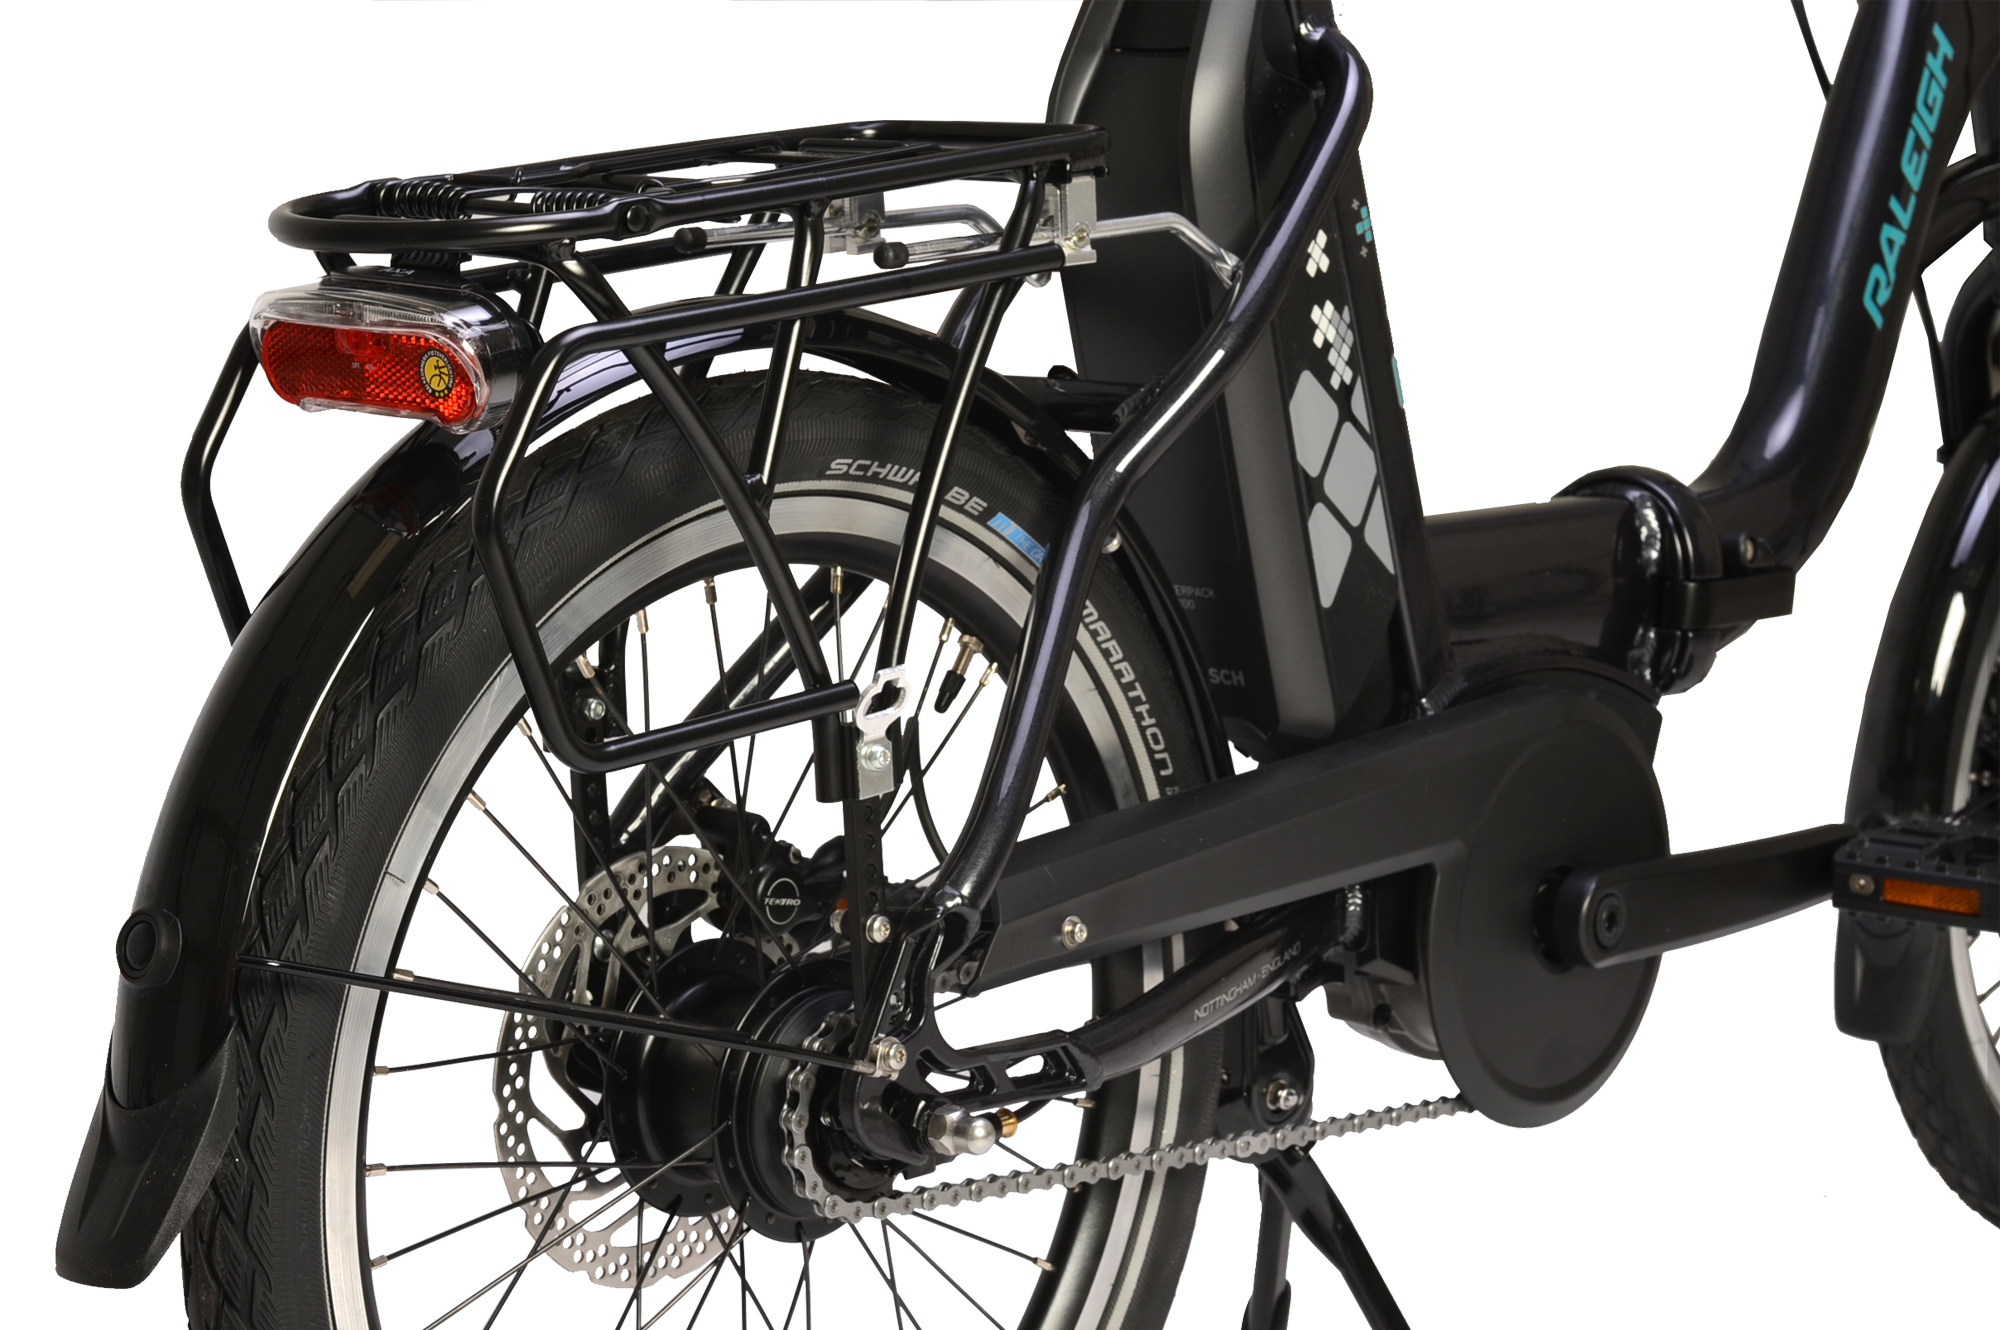 Rear luggage rack on the Raleigh Motus Kompact electric folding bike